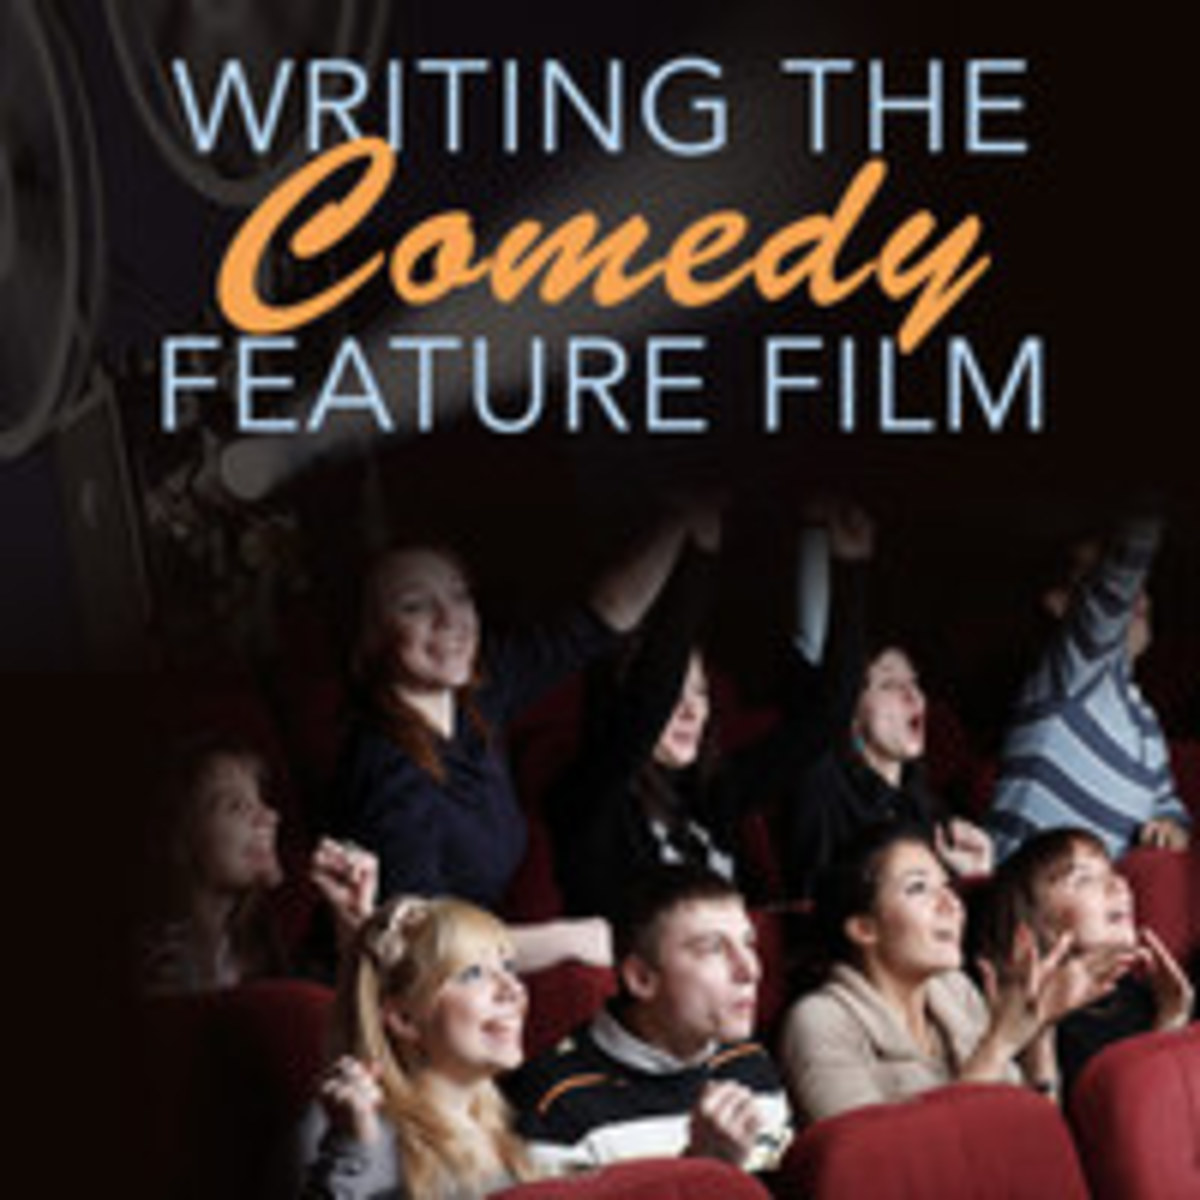 Writing the Comedy Feature Film